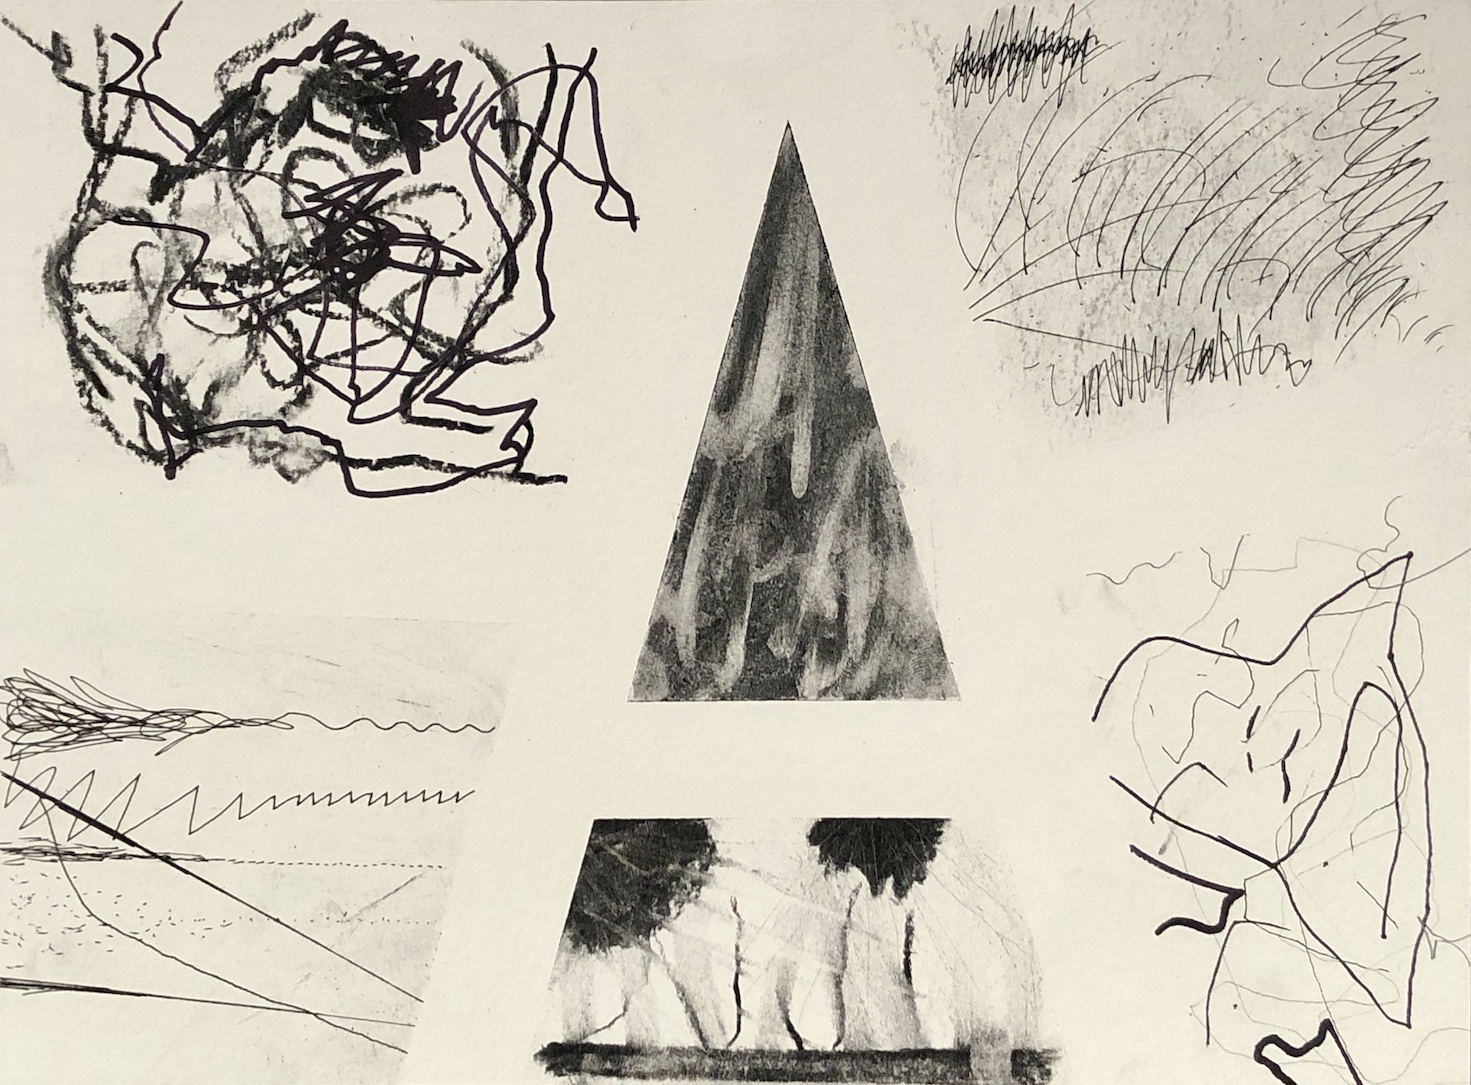 Micah Smith, Marks Vocabulary Drawings